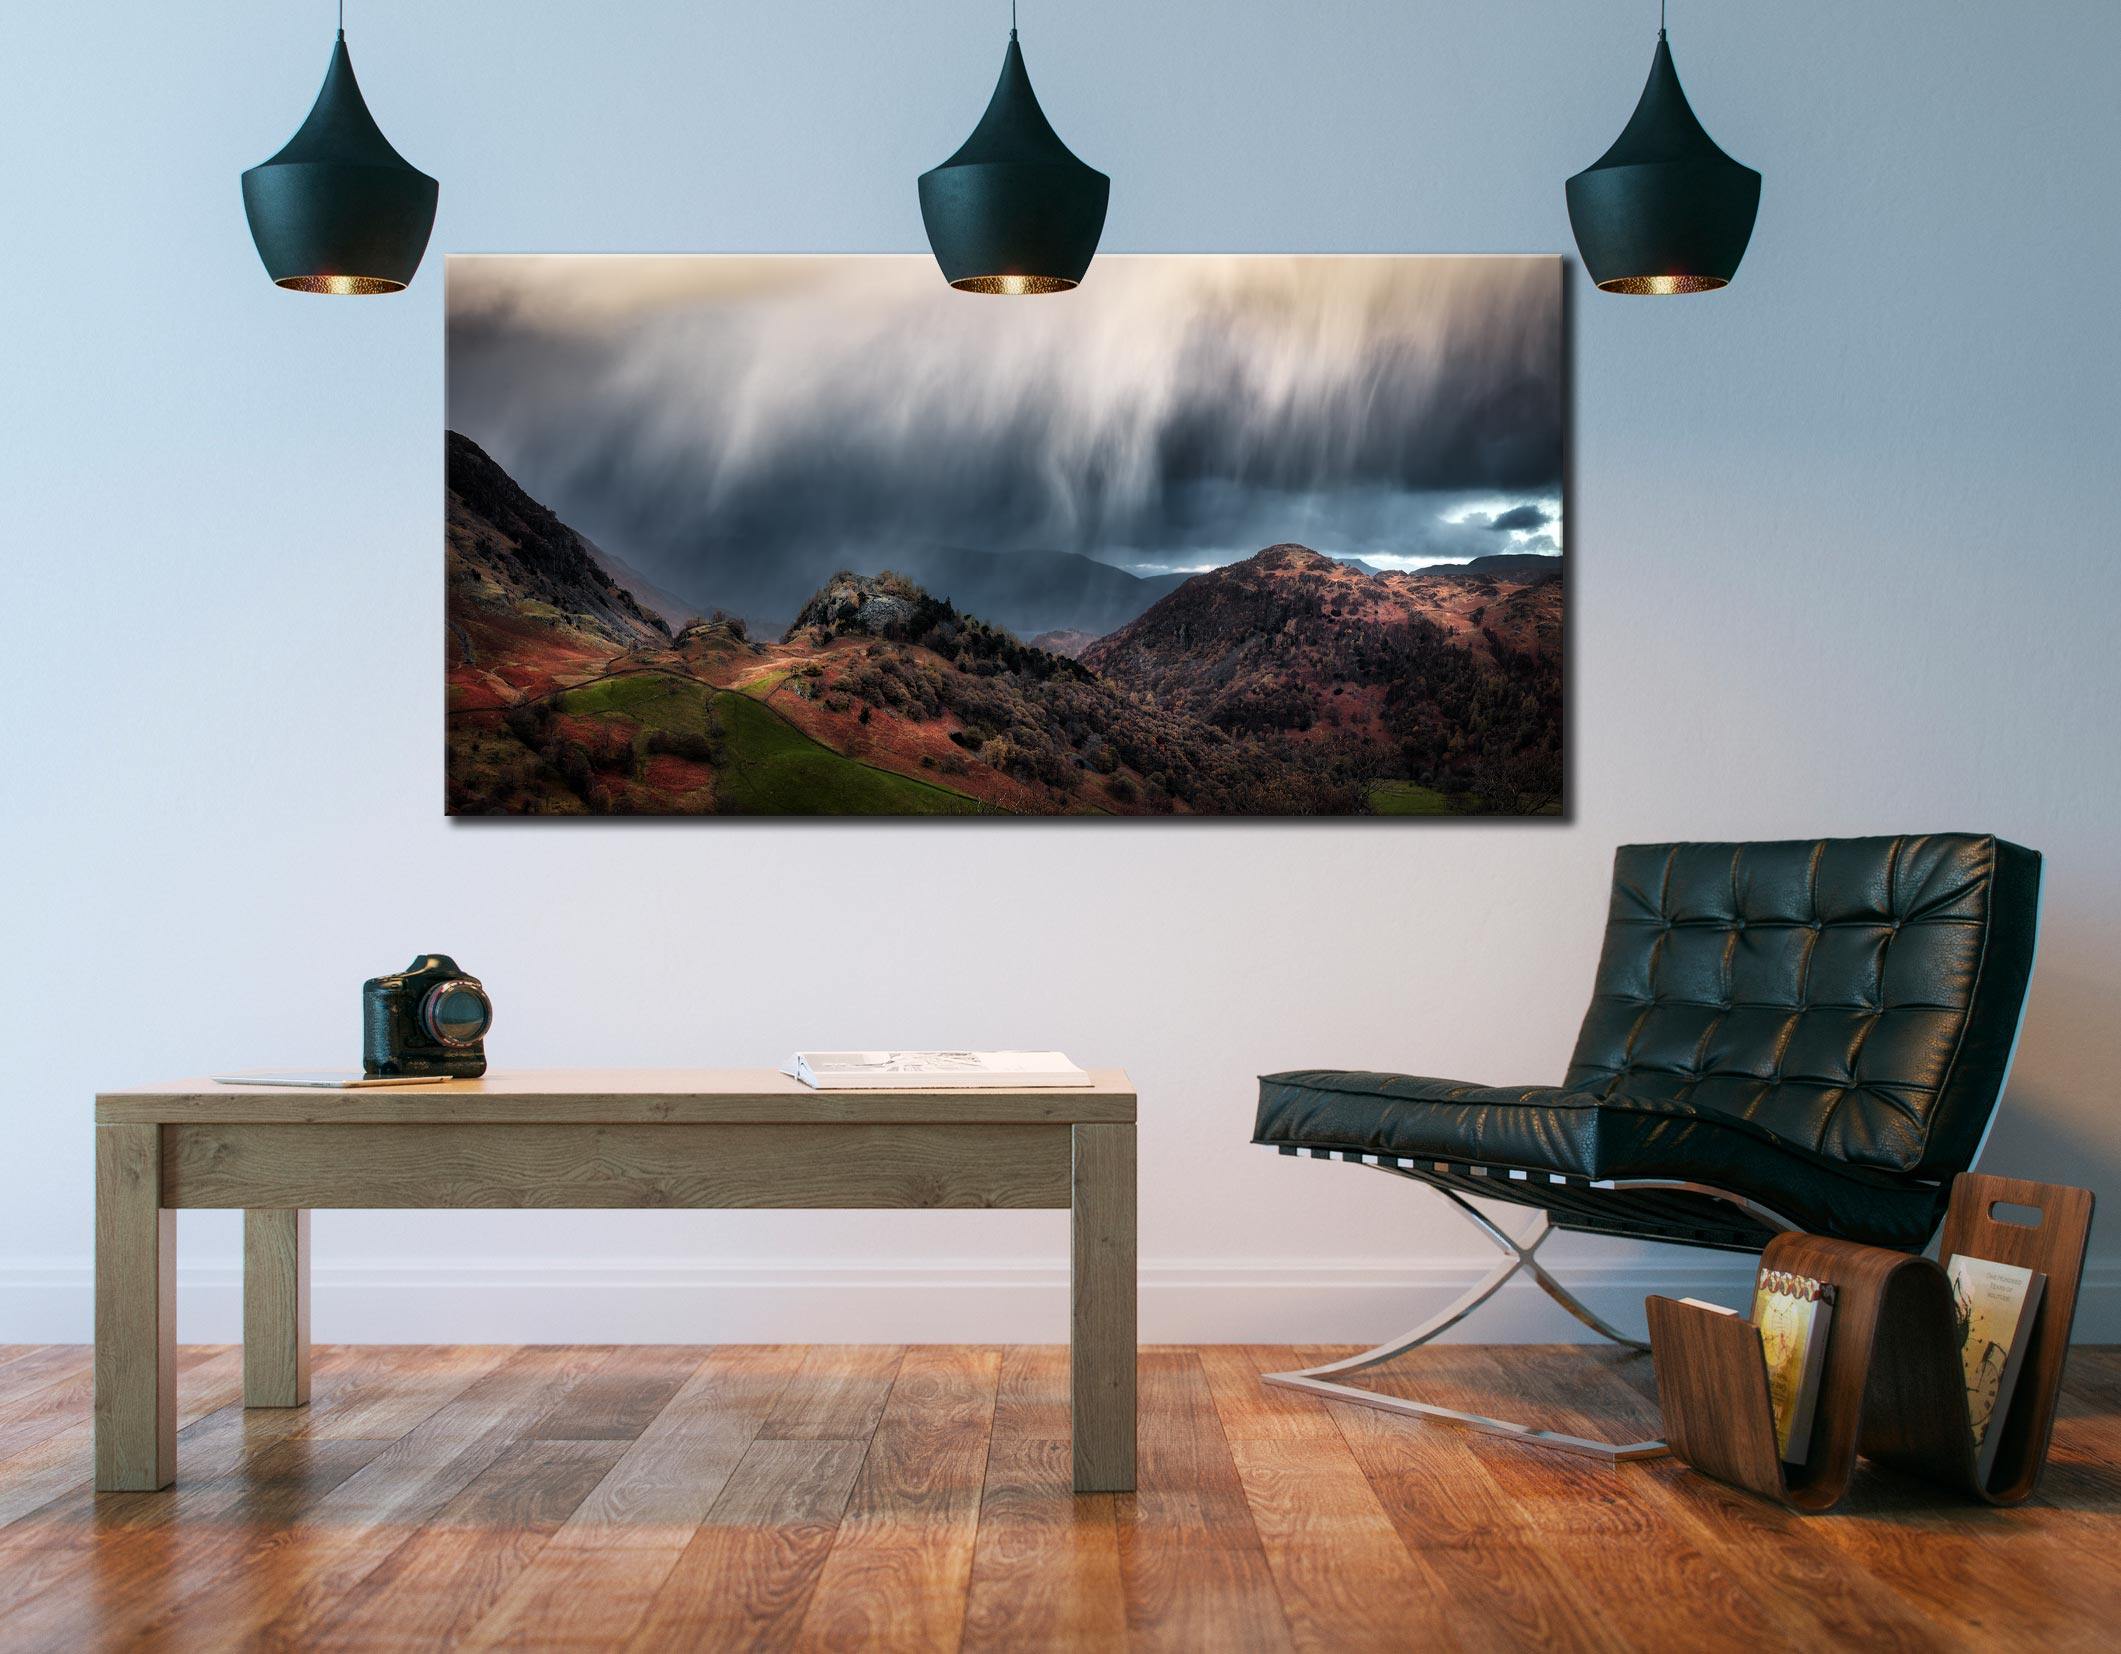 The Rains are a Coming - Canvas Print on Wall